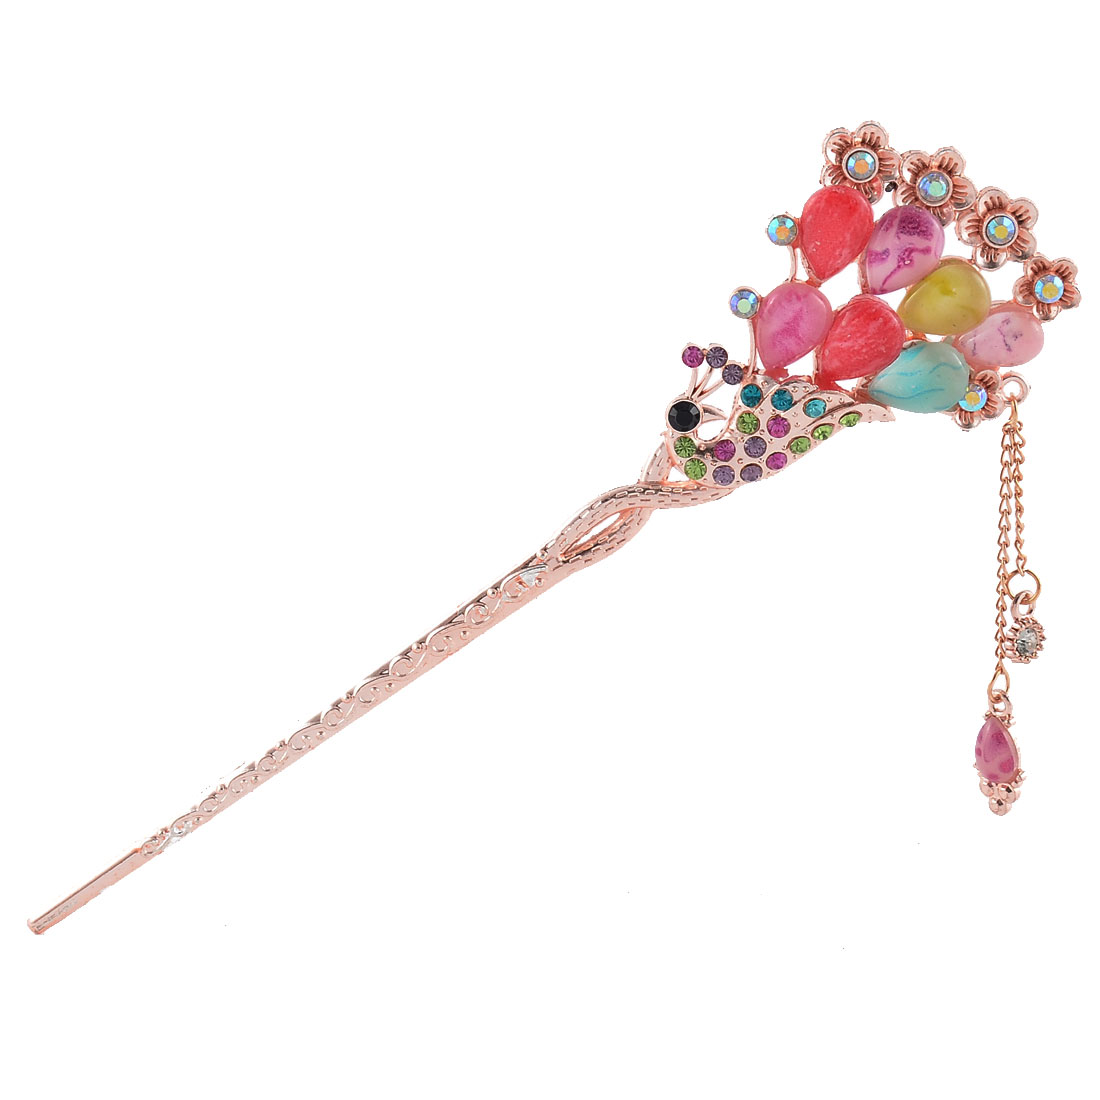 Rhinestone Chinese Manmade Vintage Flower Peacock Shape Hair Stick